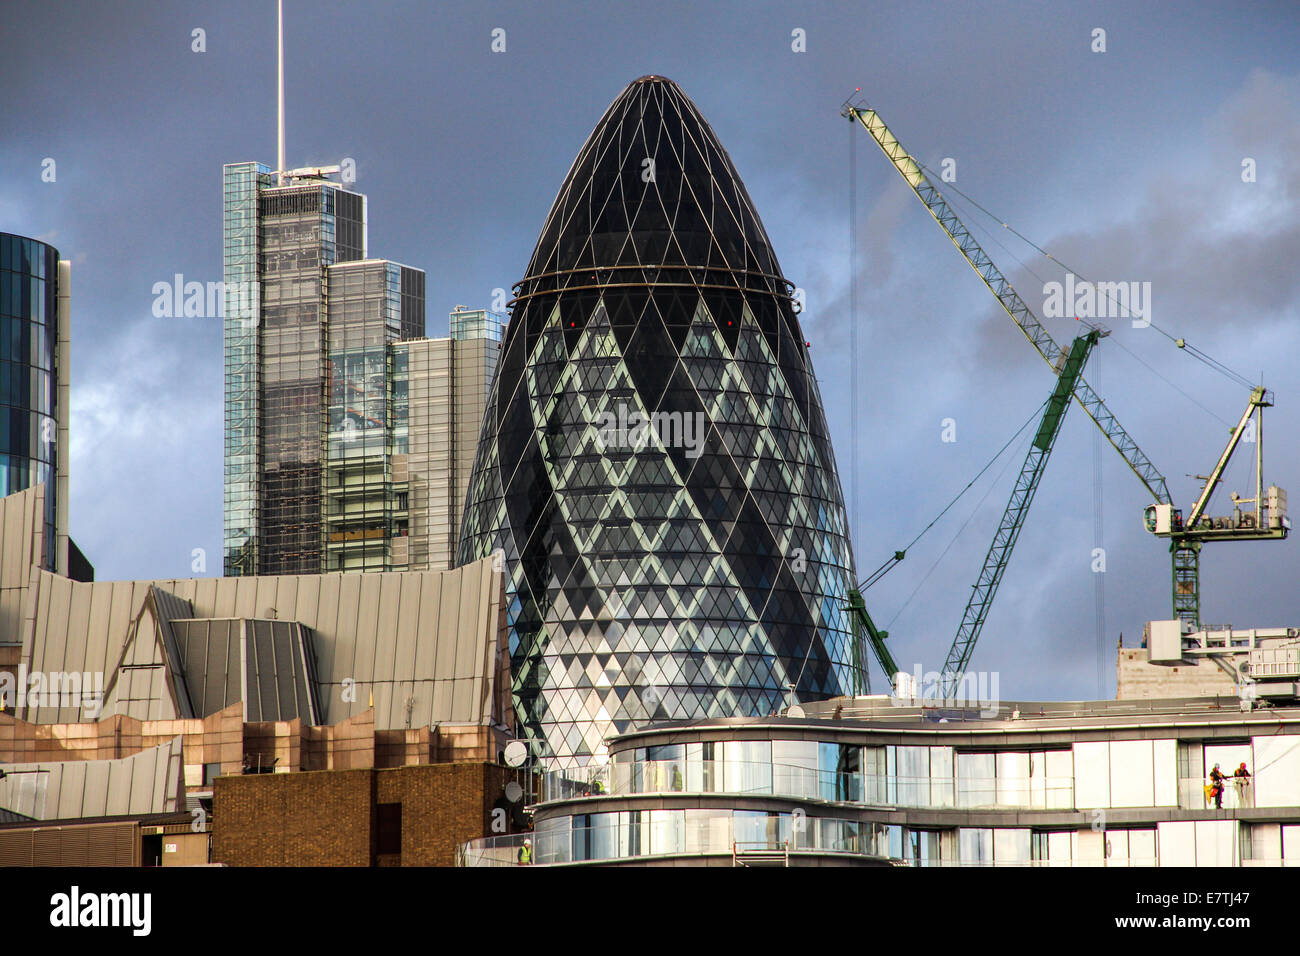 England: 30 St Mary Axe (the Gherkin) at the City of London. Photo from 10. January 2014. Stock Photo